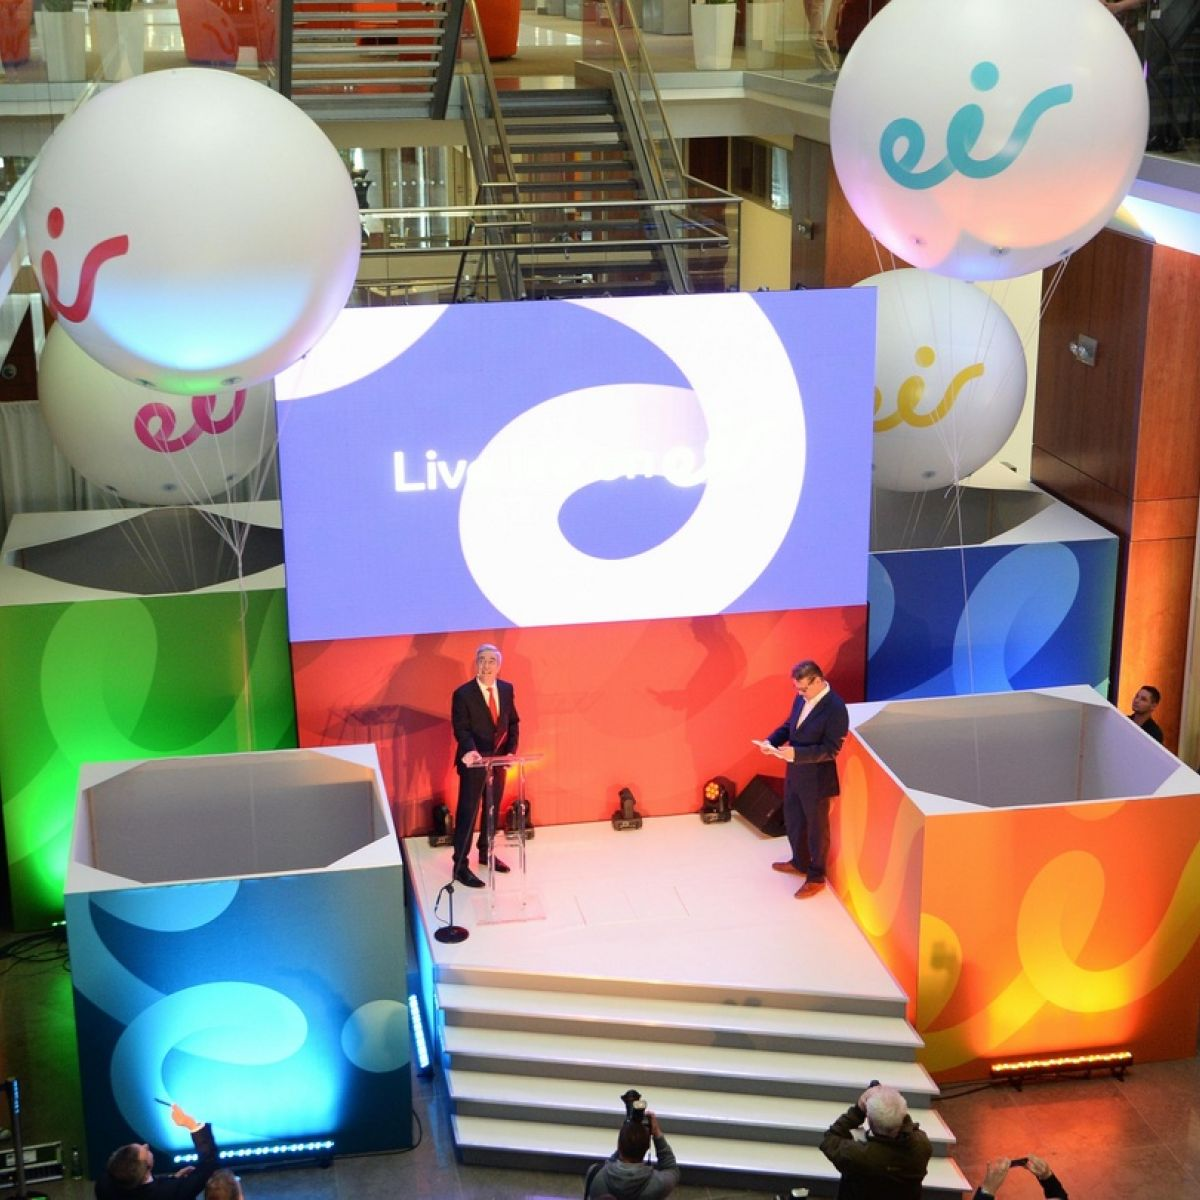 Eir to cut 750 jobs after French takeover of phone company